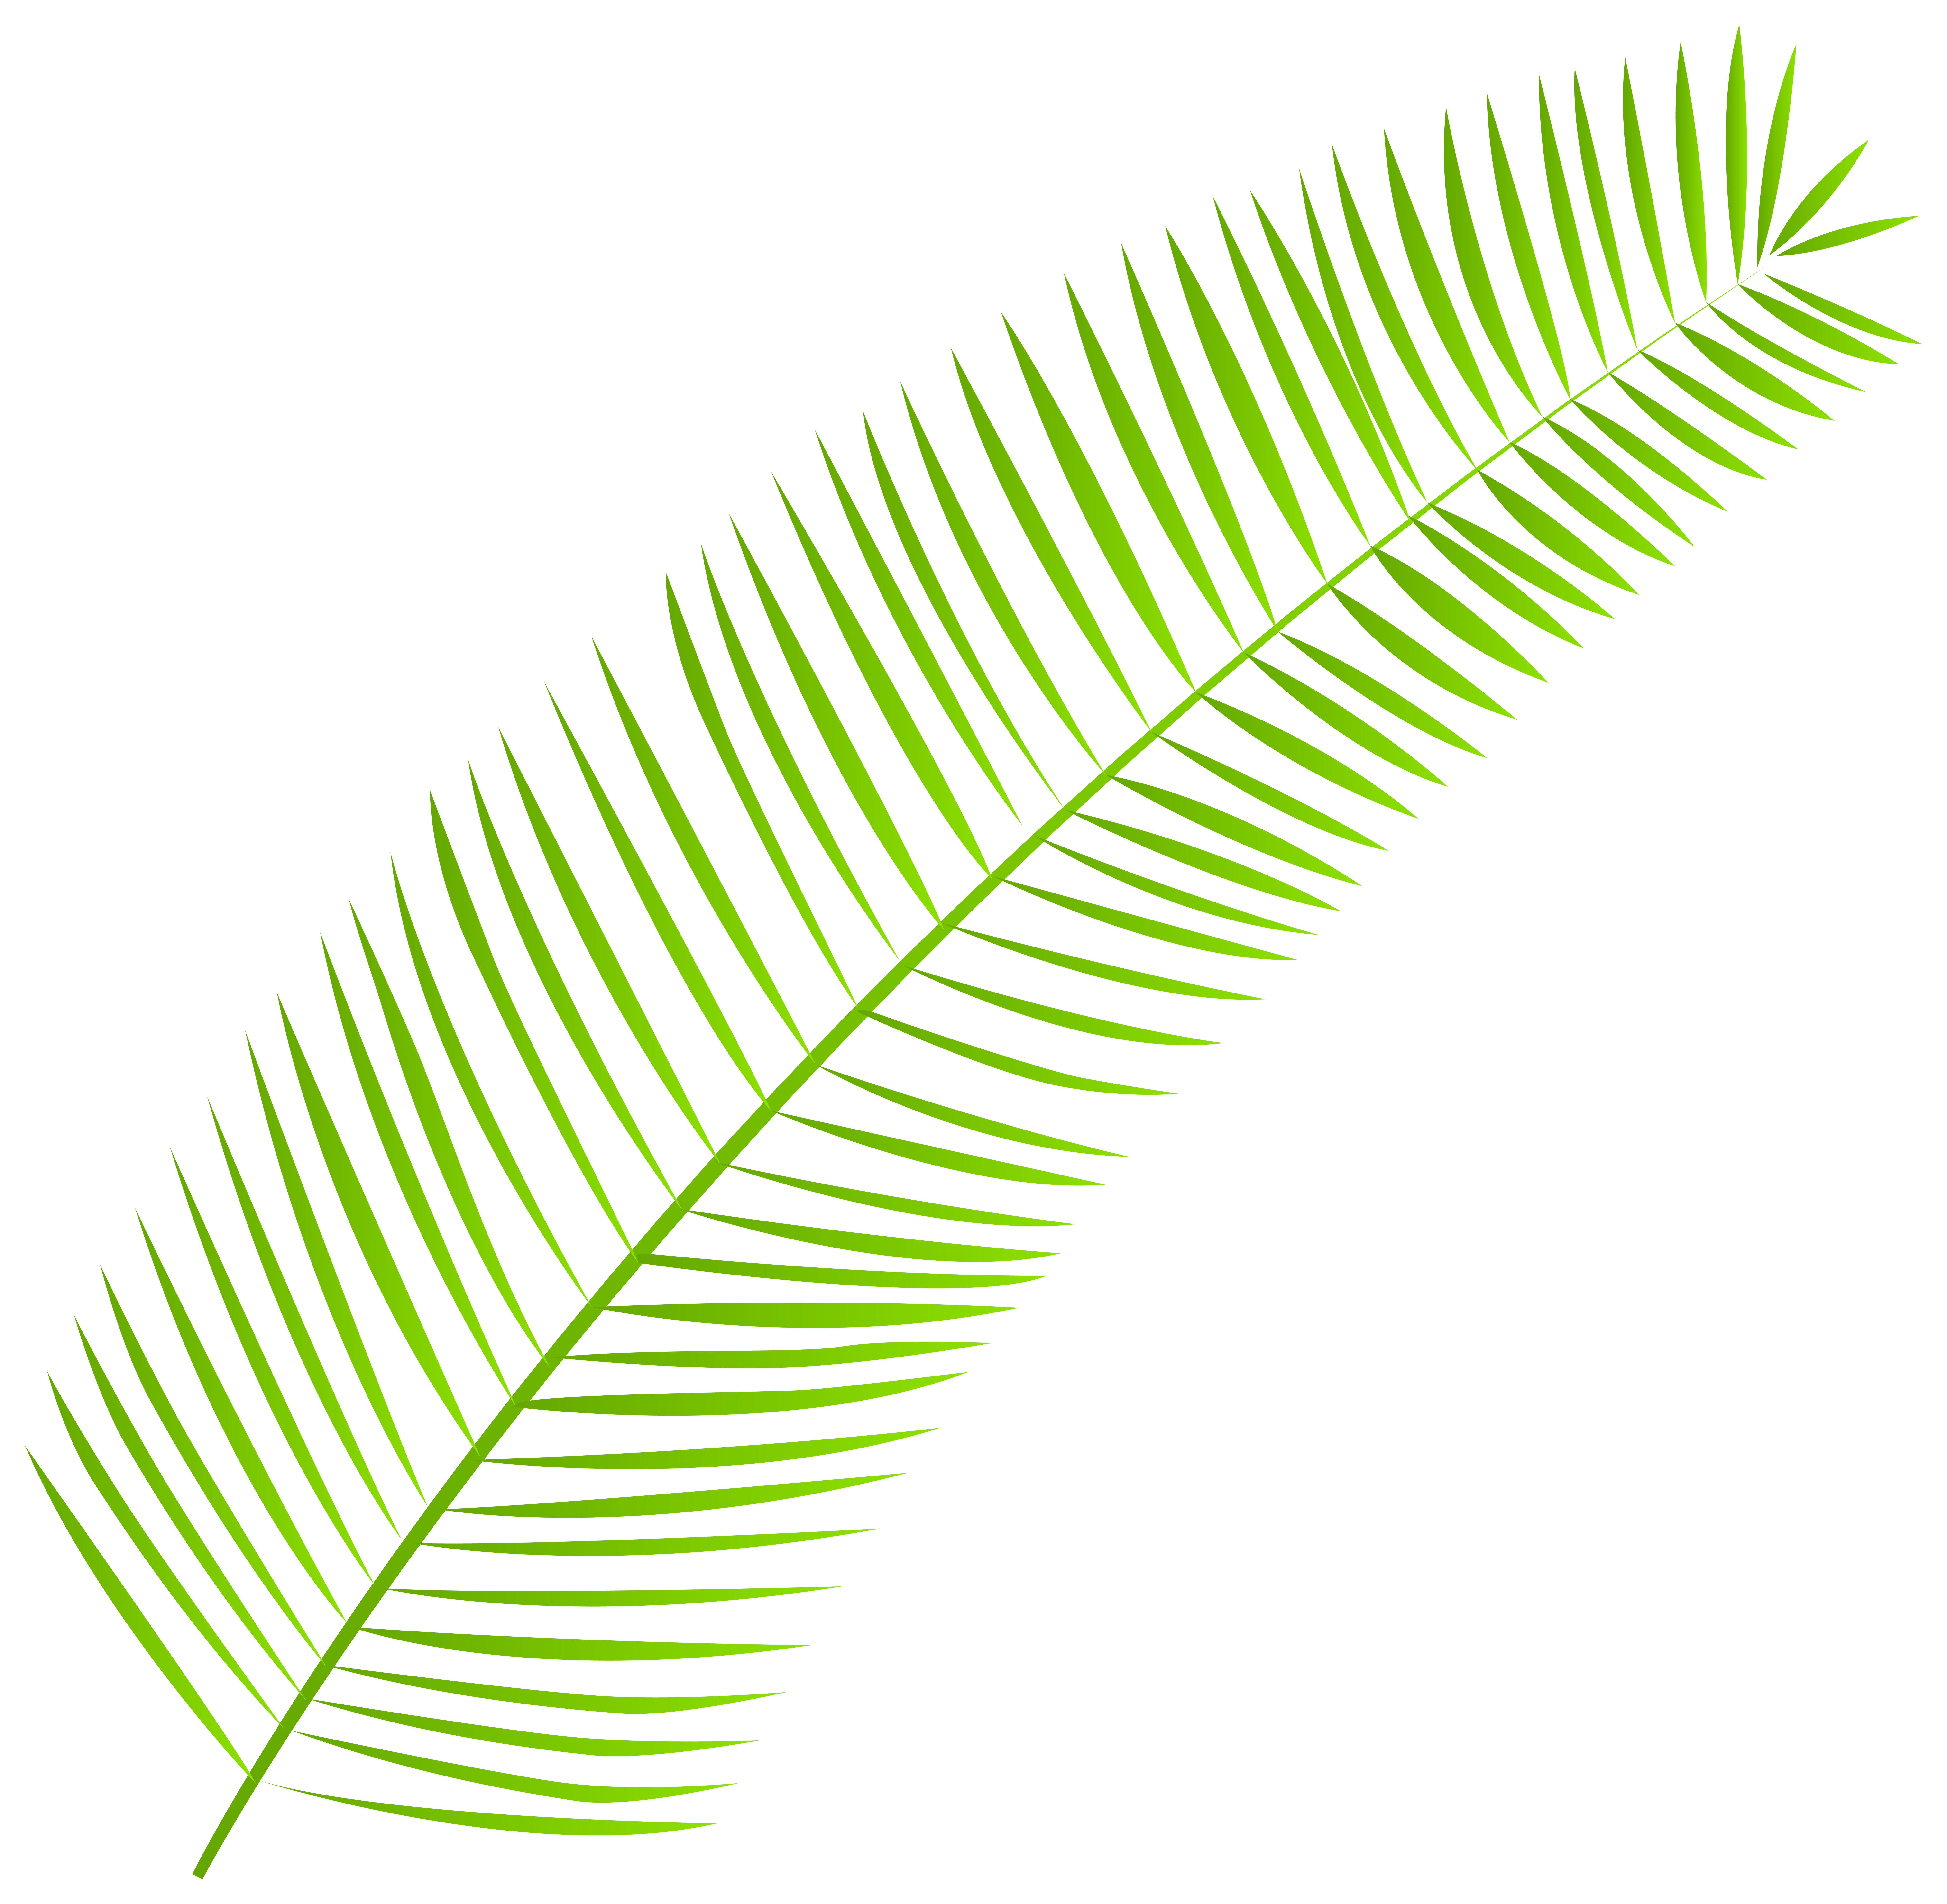 Leaves clipart palm branch. Leaf png clip art